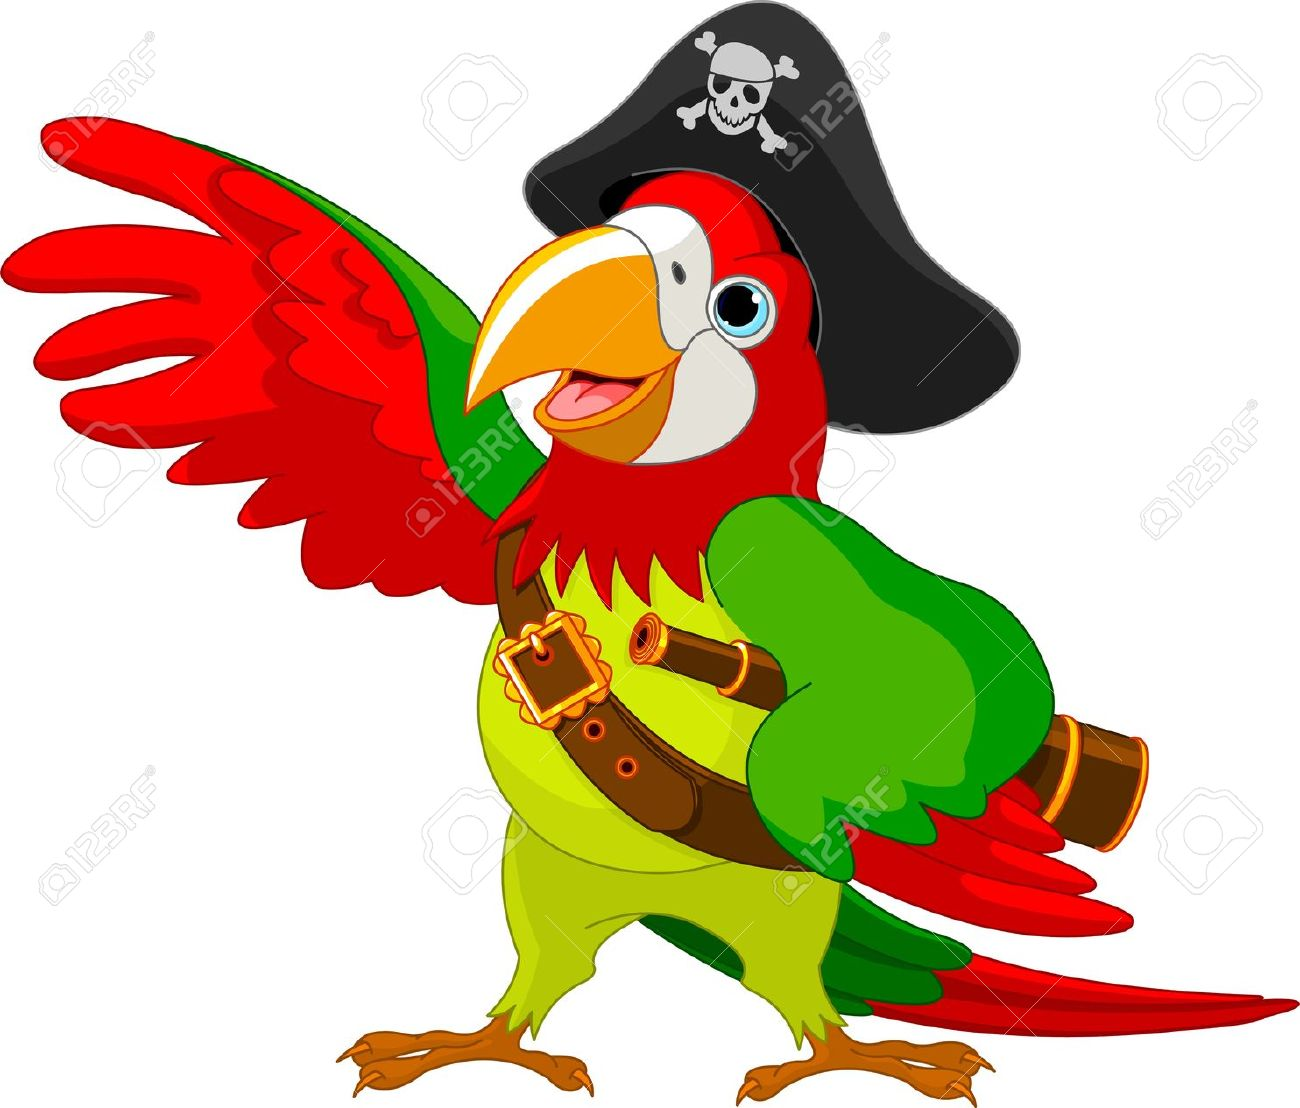 Illustration Of Talking Pirate Parrot Royalty Free Cliparts.